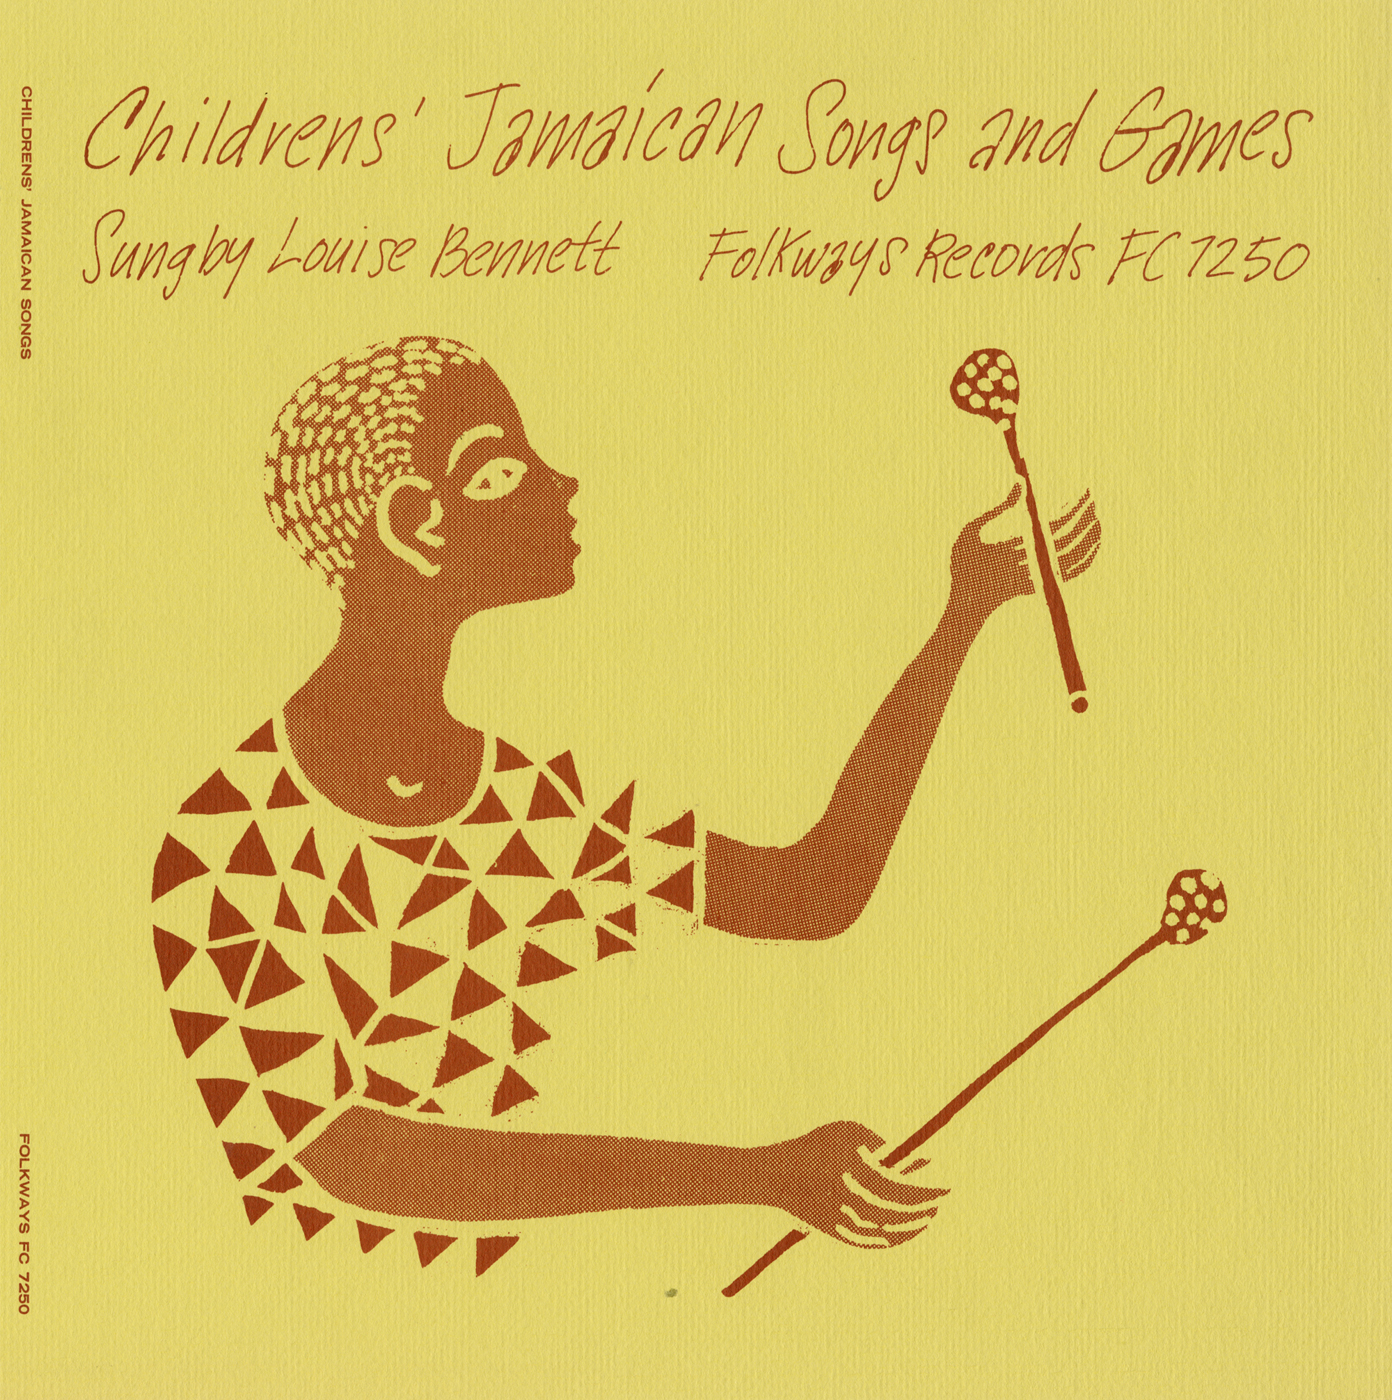 children u0026 39 s jamaican songs and games